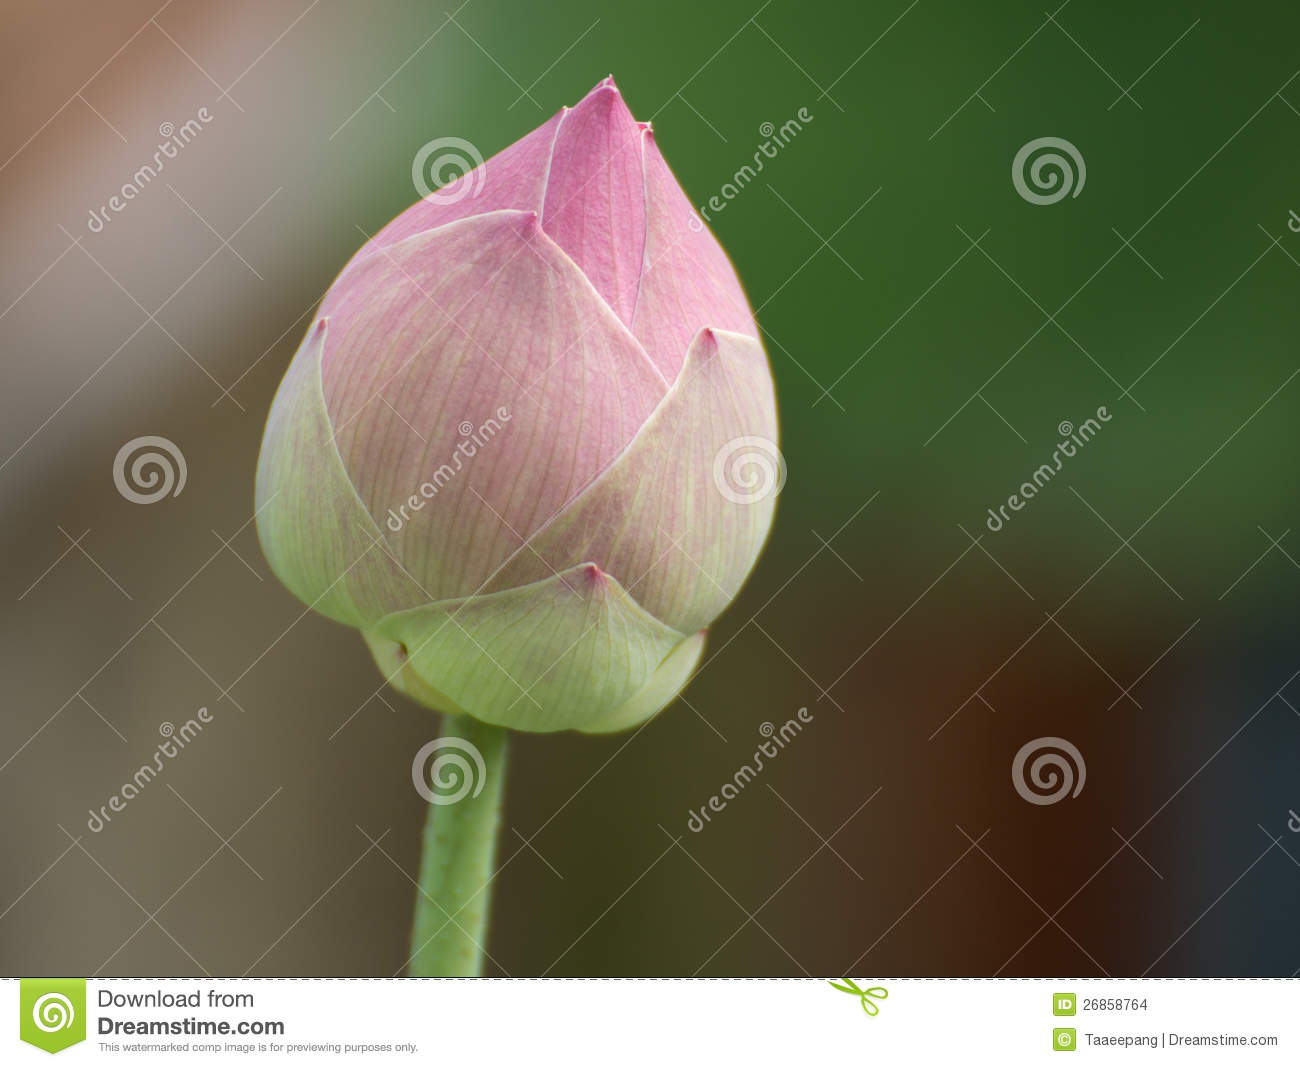 A Pink Lotus Flower Growing Upright Stock Photo Image Of Pivoting